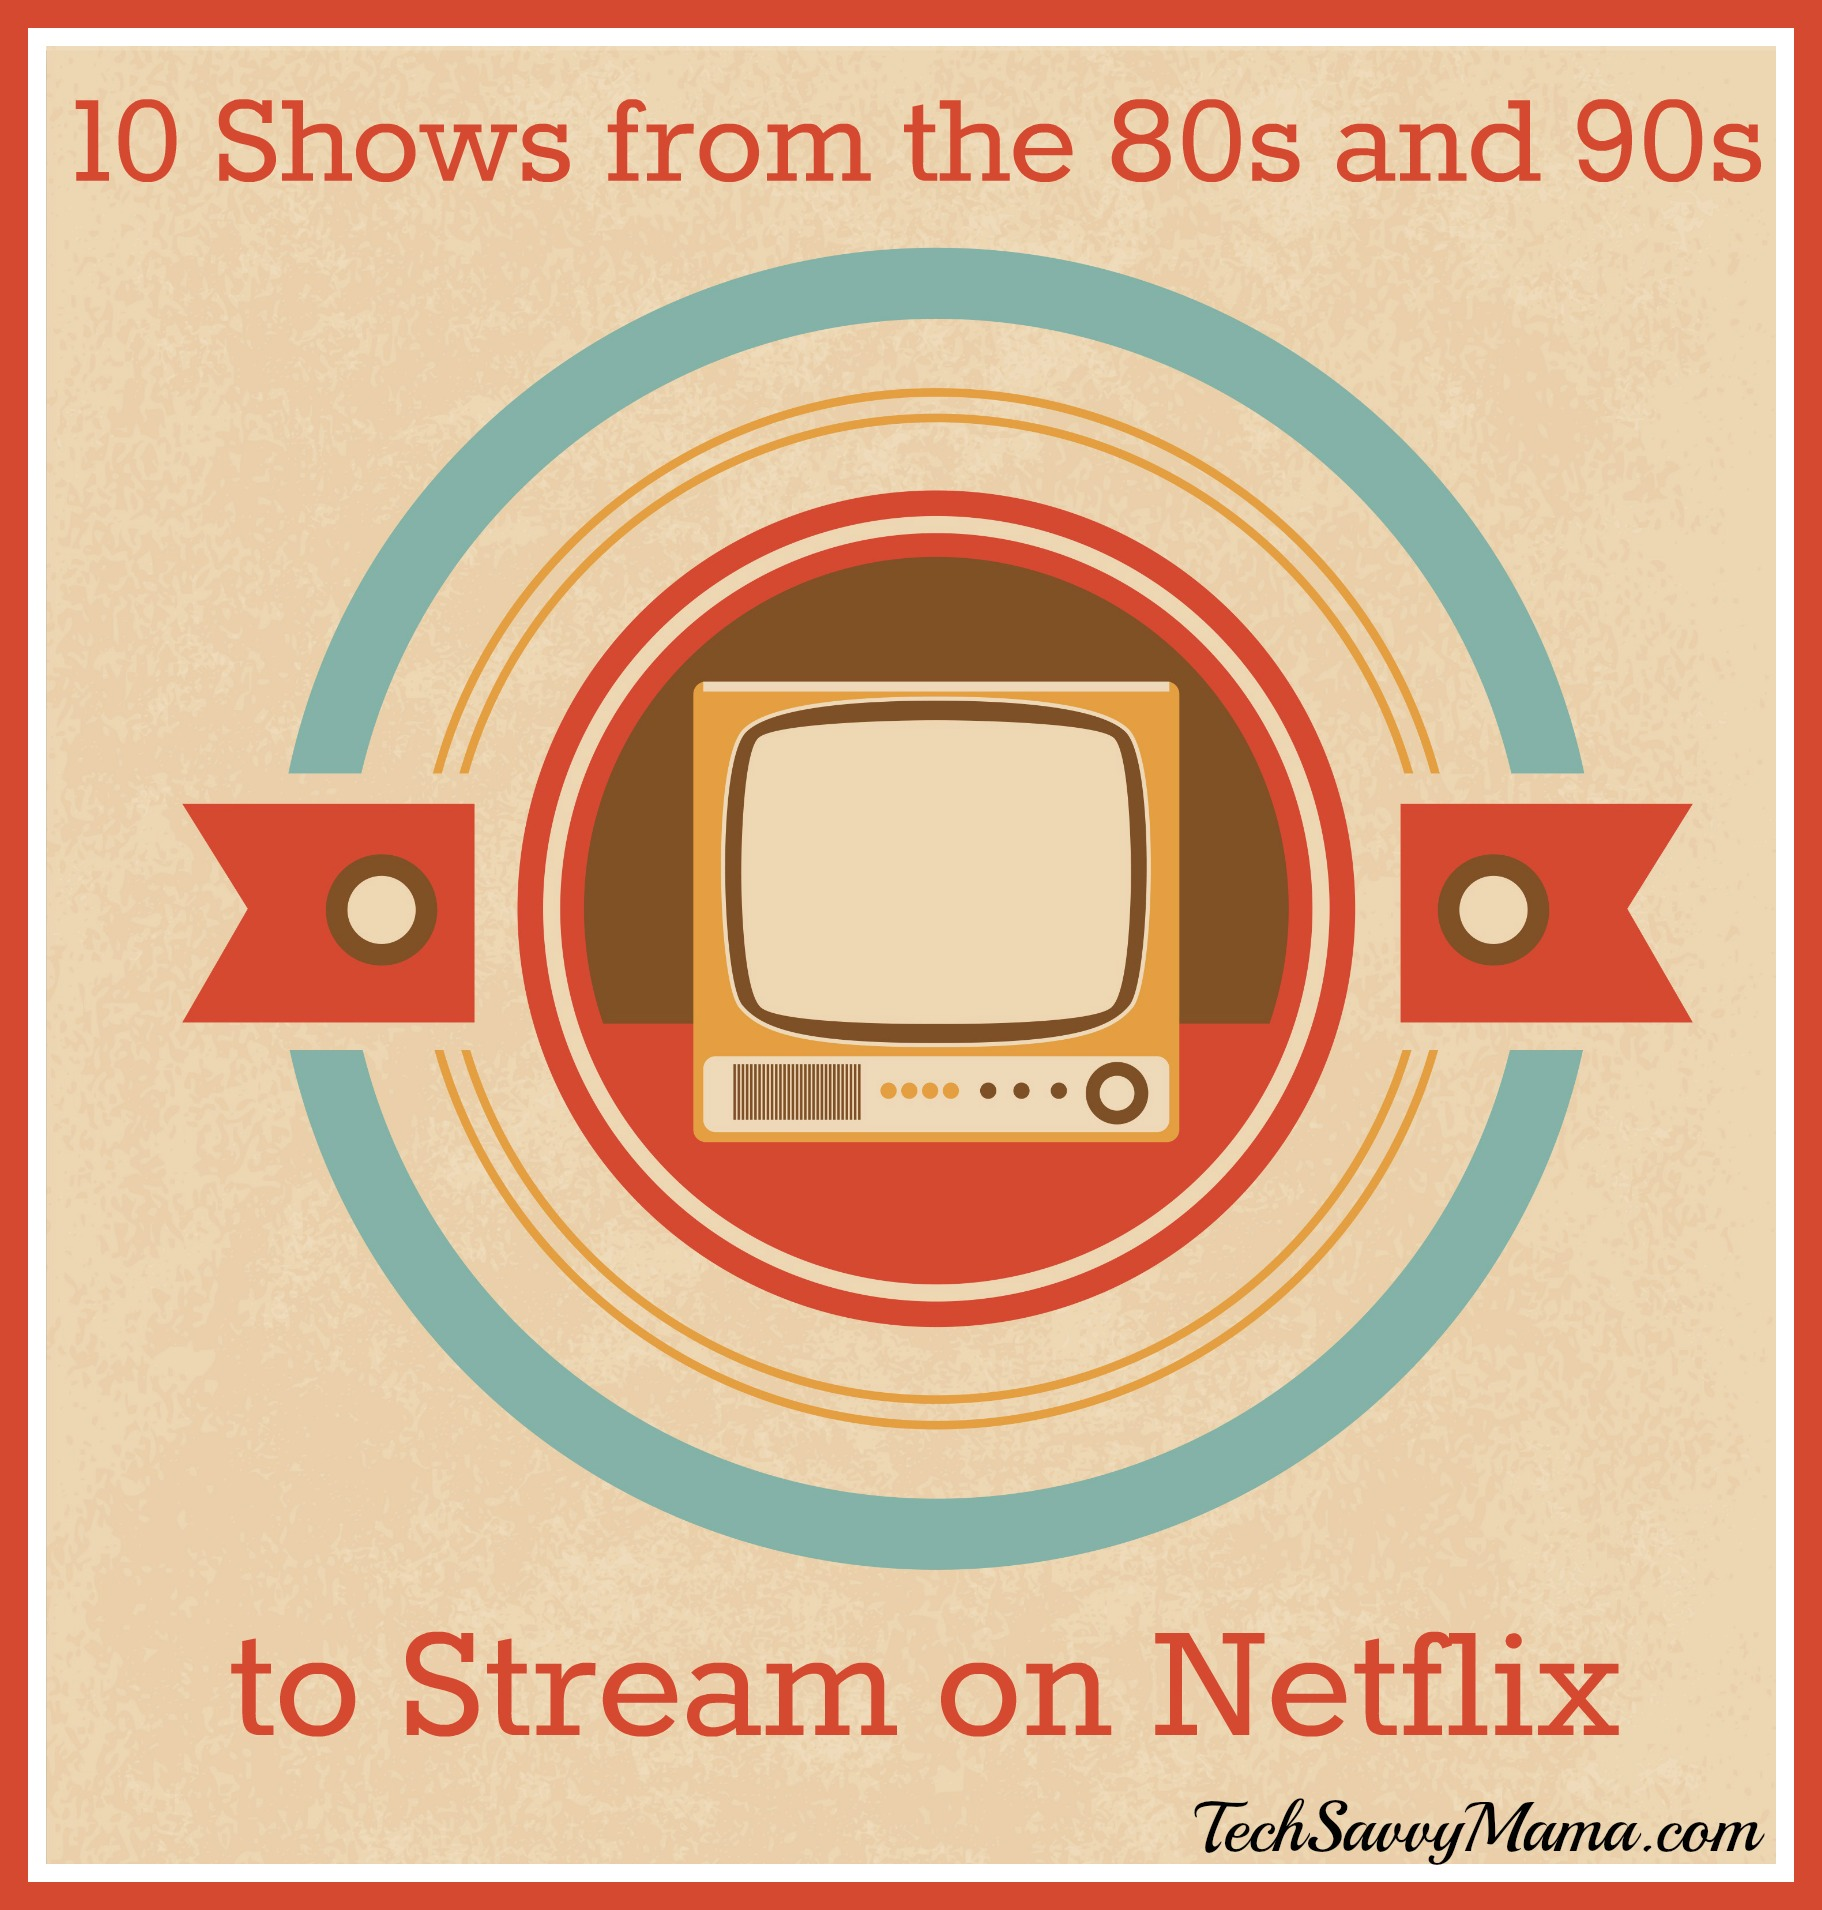 10 Television Shows from the 80s and 90s to Stream on Netflix #StreamTeam